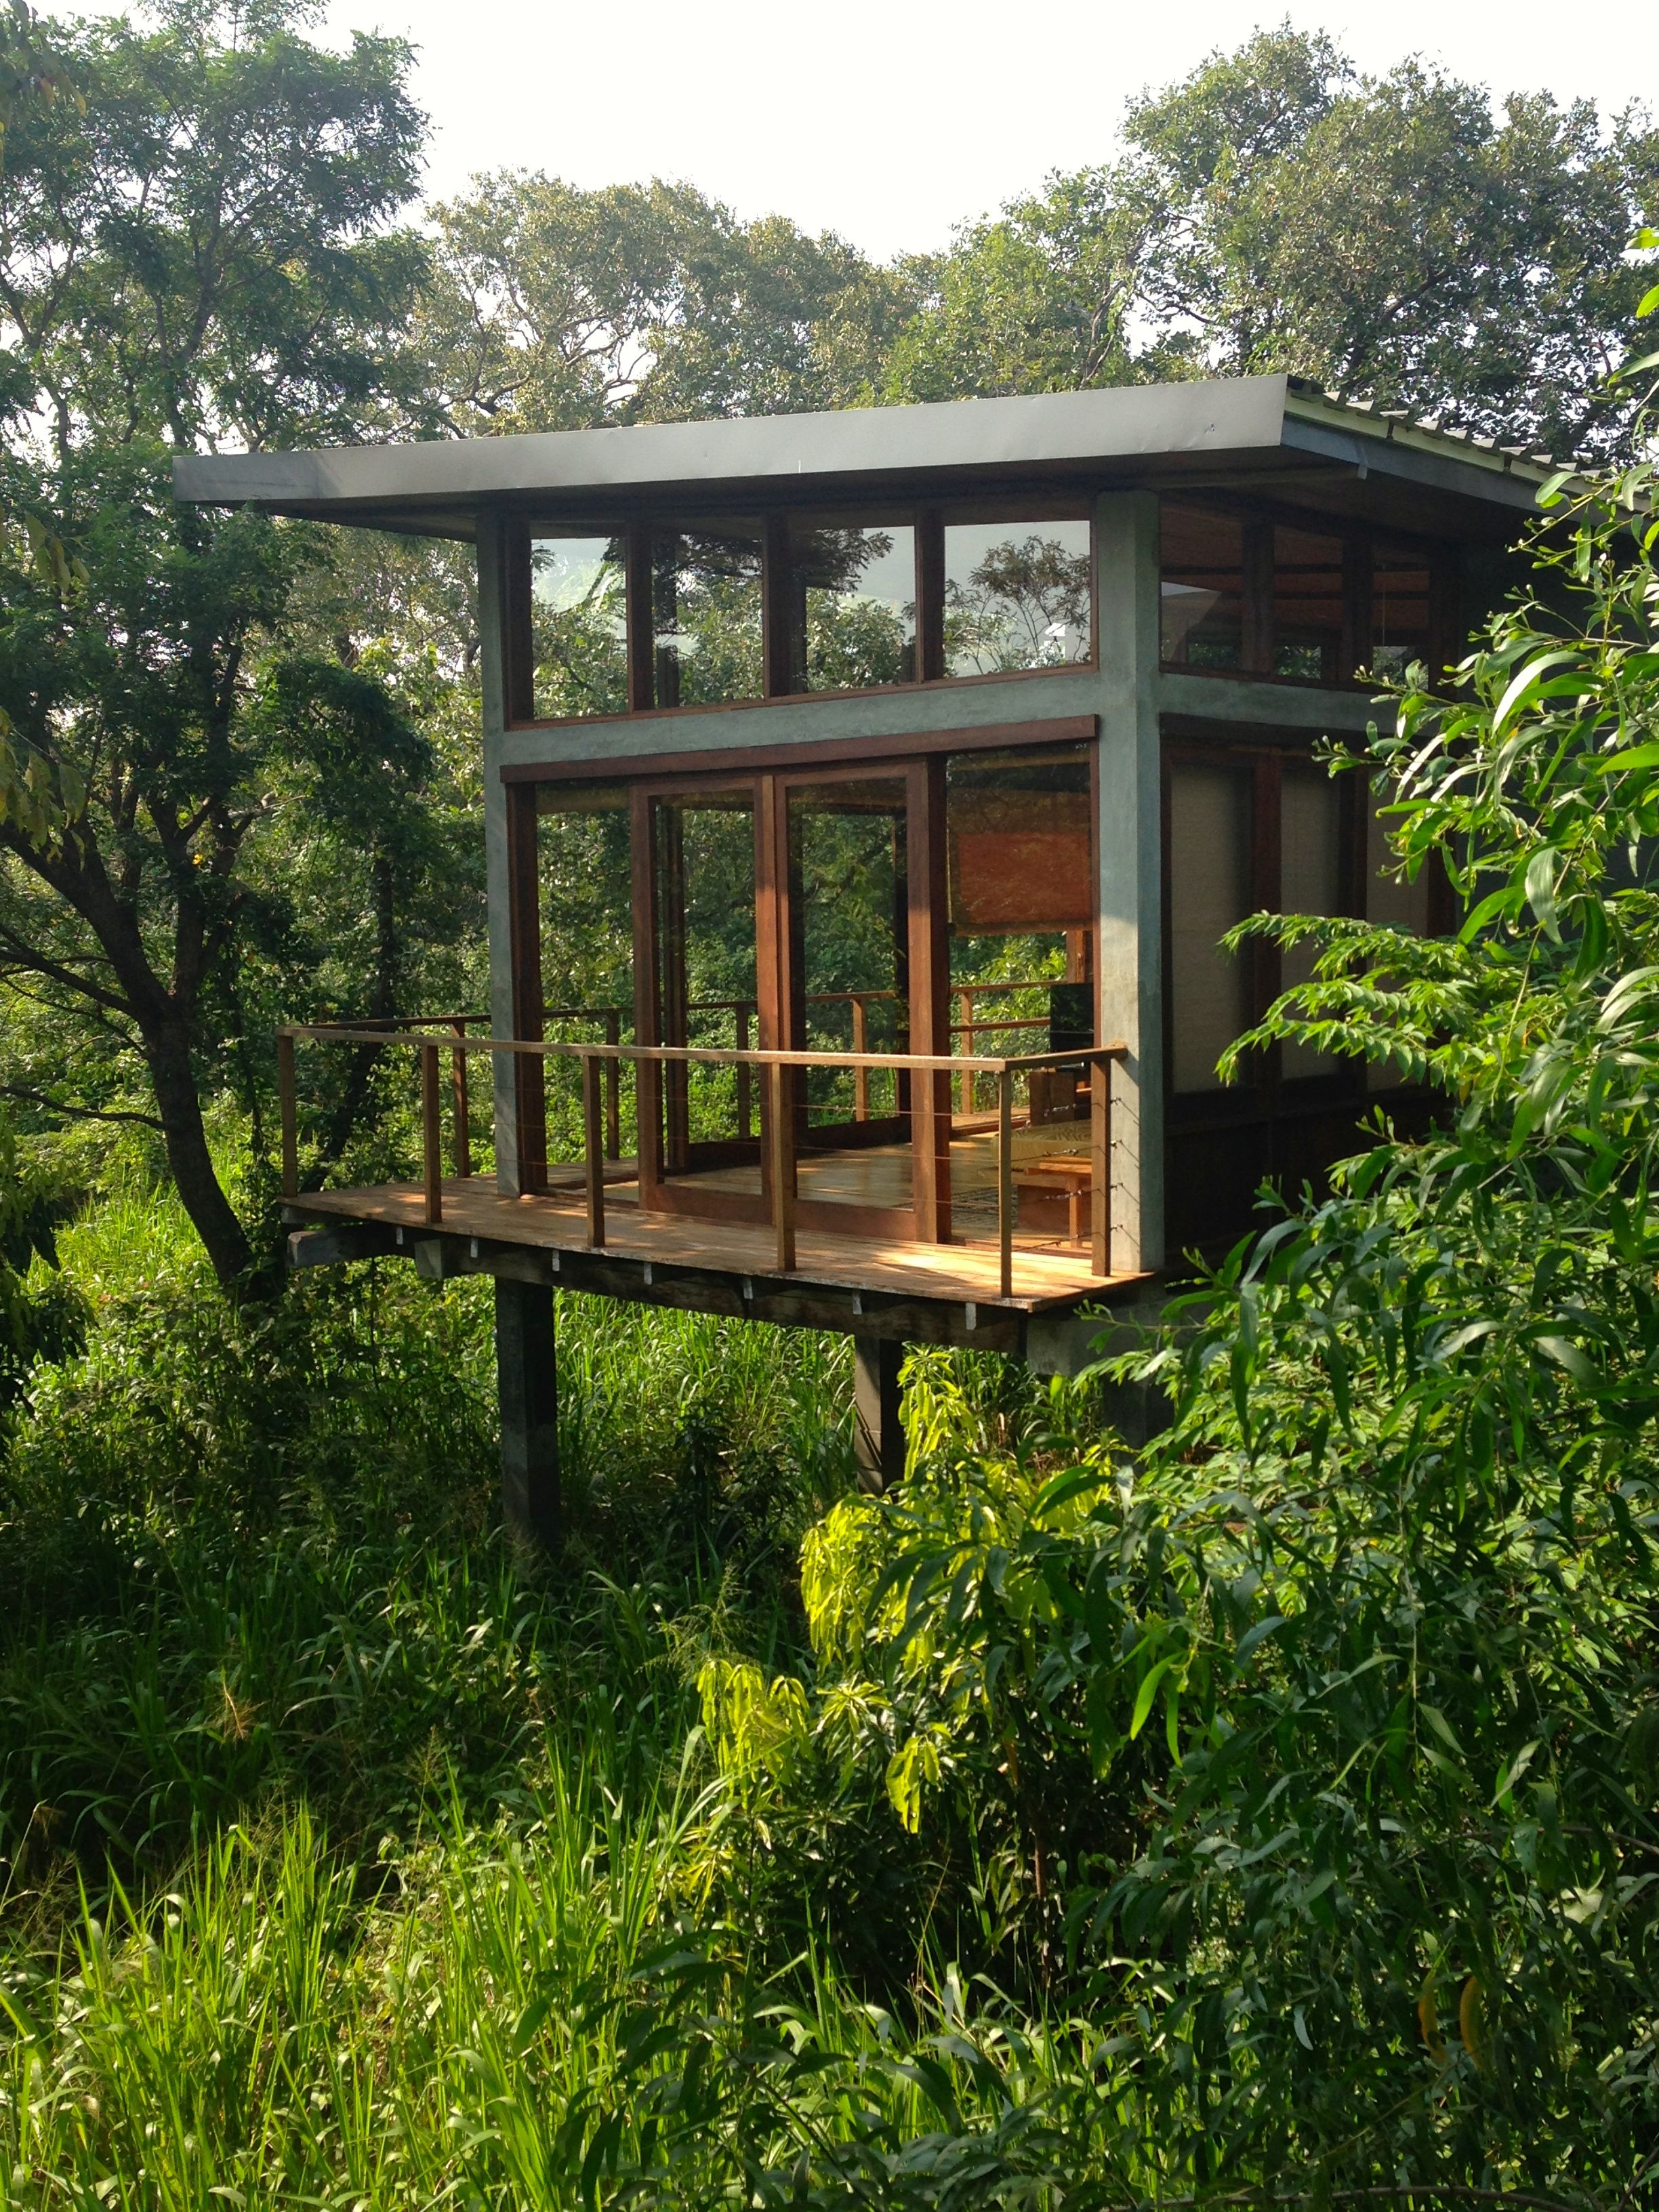 21 Unbeliavably Amazing Treehouse Ideas That Will Inspire You In